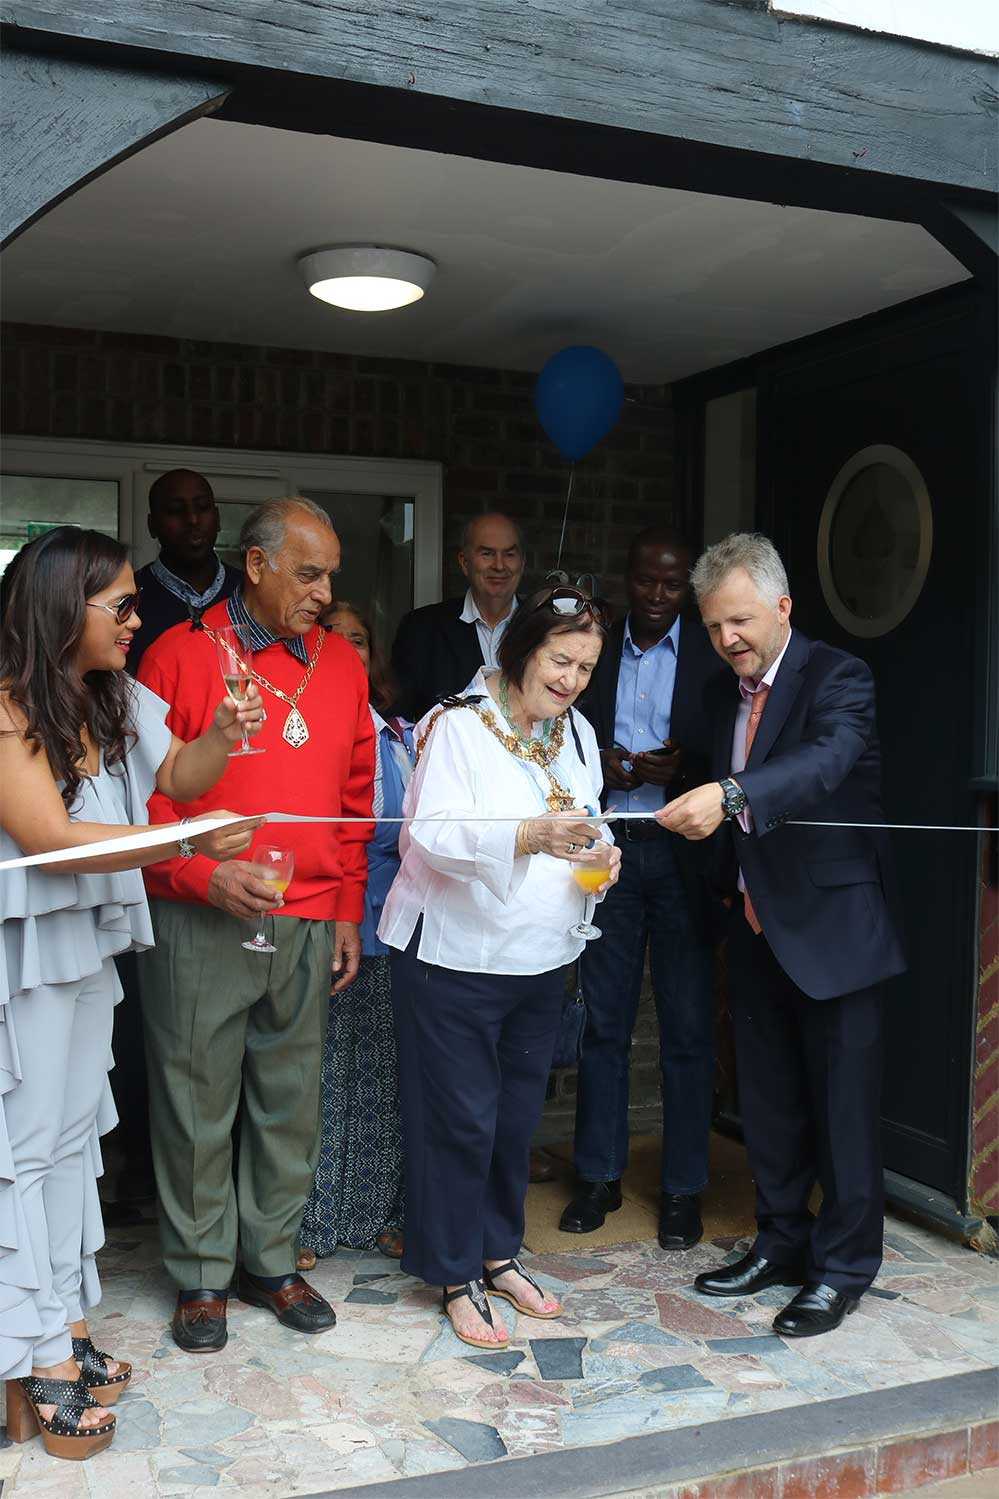 Mayor of Croydon inaugurates school Residence